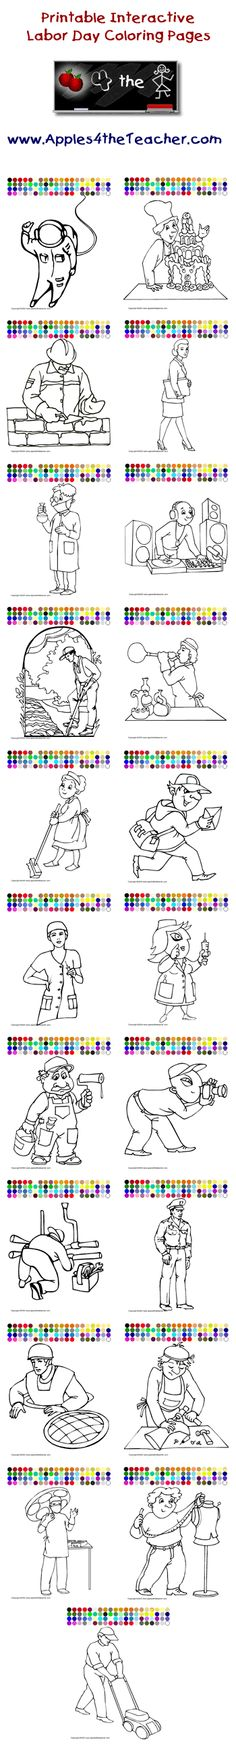 Printable Interactive Labor Day Coloring Pages For Kids